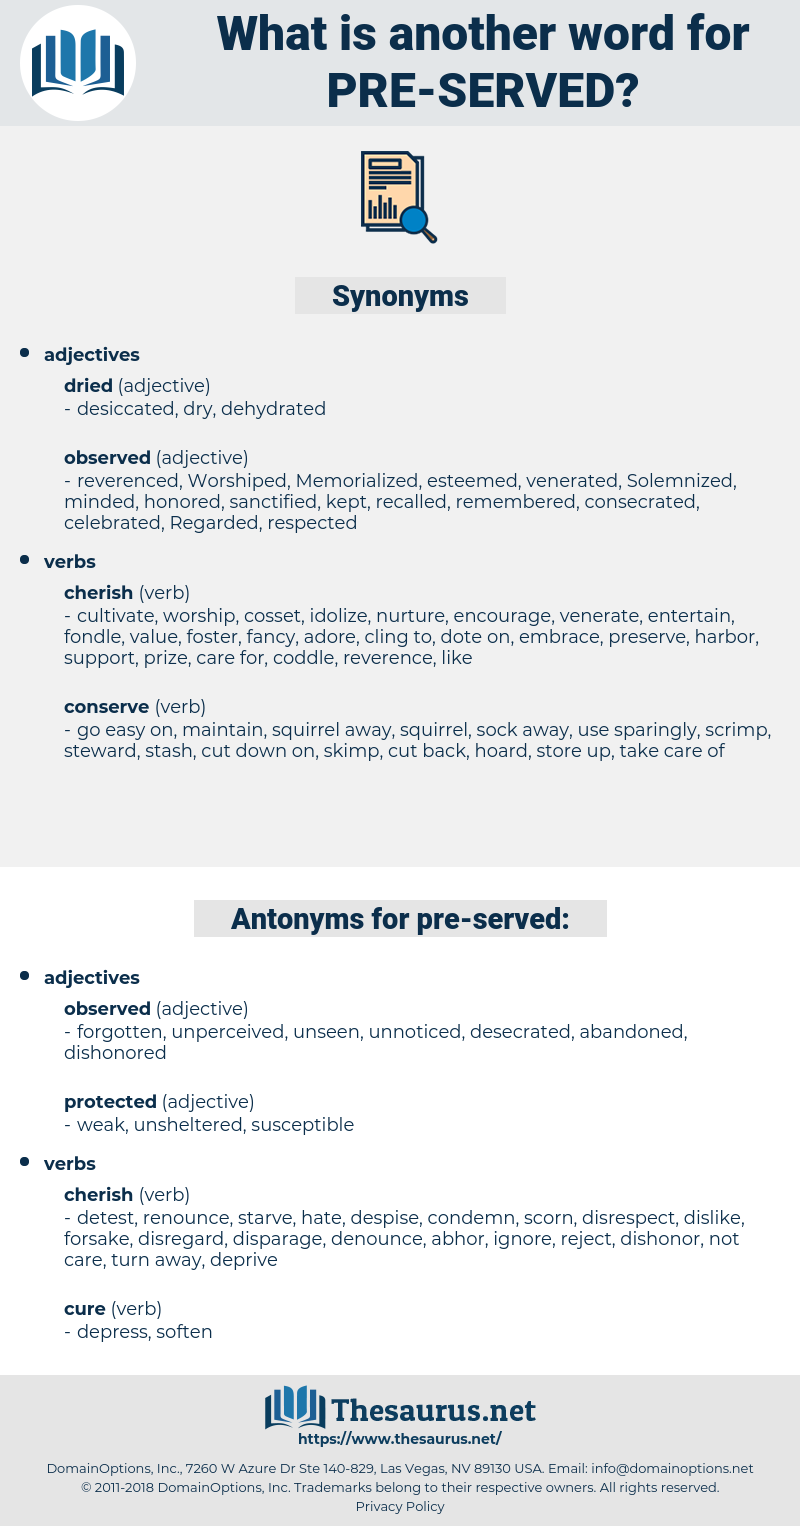 pre-served, synonym pre-served, another word for pre-served, words like pre-served, thesaurus pre-served